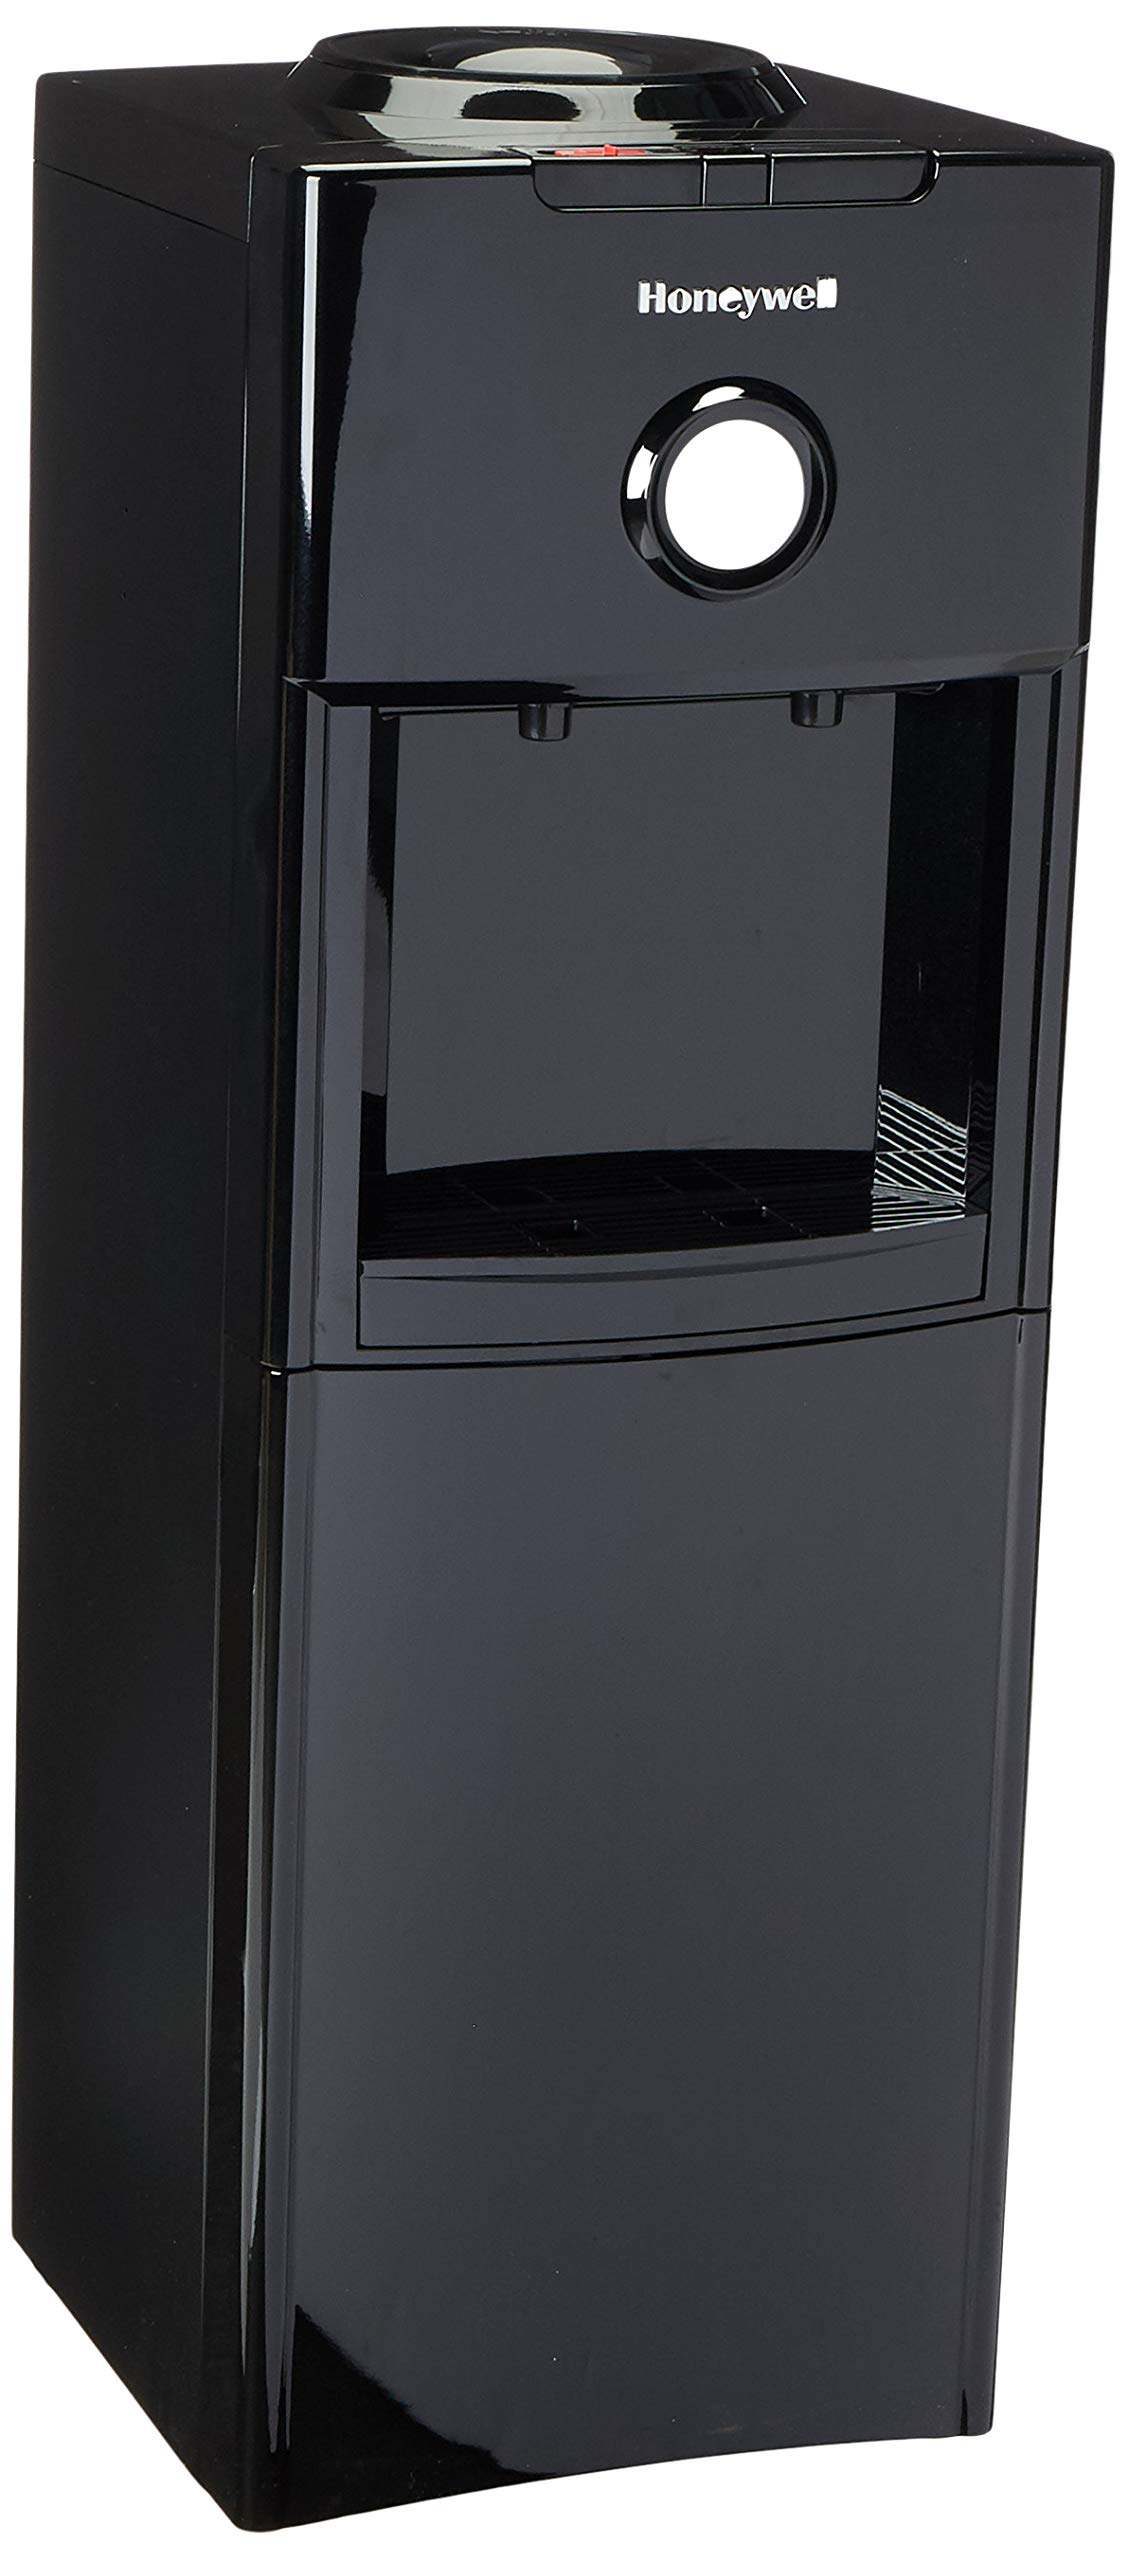 Honeywell Antibacterial Chemical-Free Technology, Hot and Cold Water Dispenser, Stainless Steel Tank, Adjustable Thermostat, Black